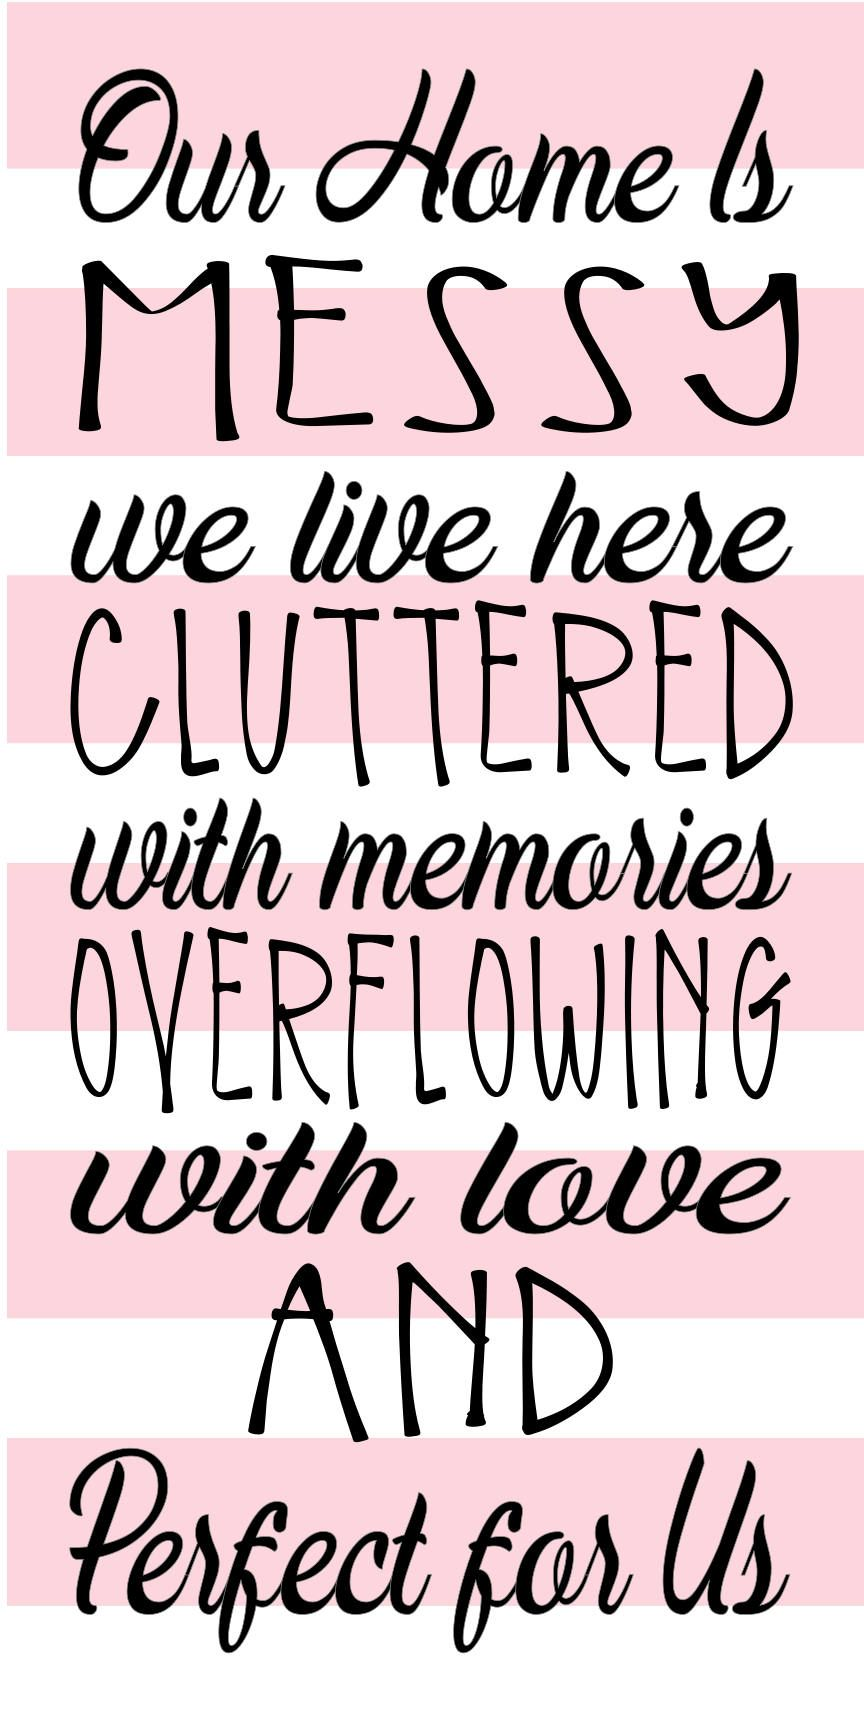 Download Our home is messy we live here cluttered with memories ...